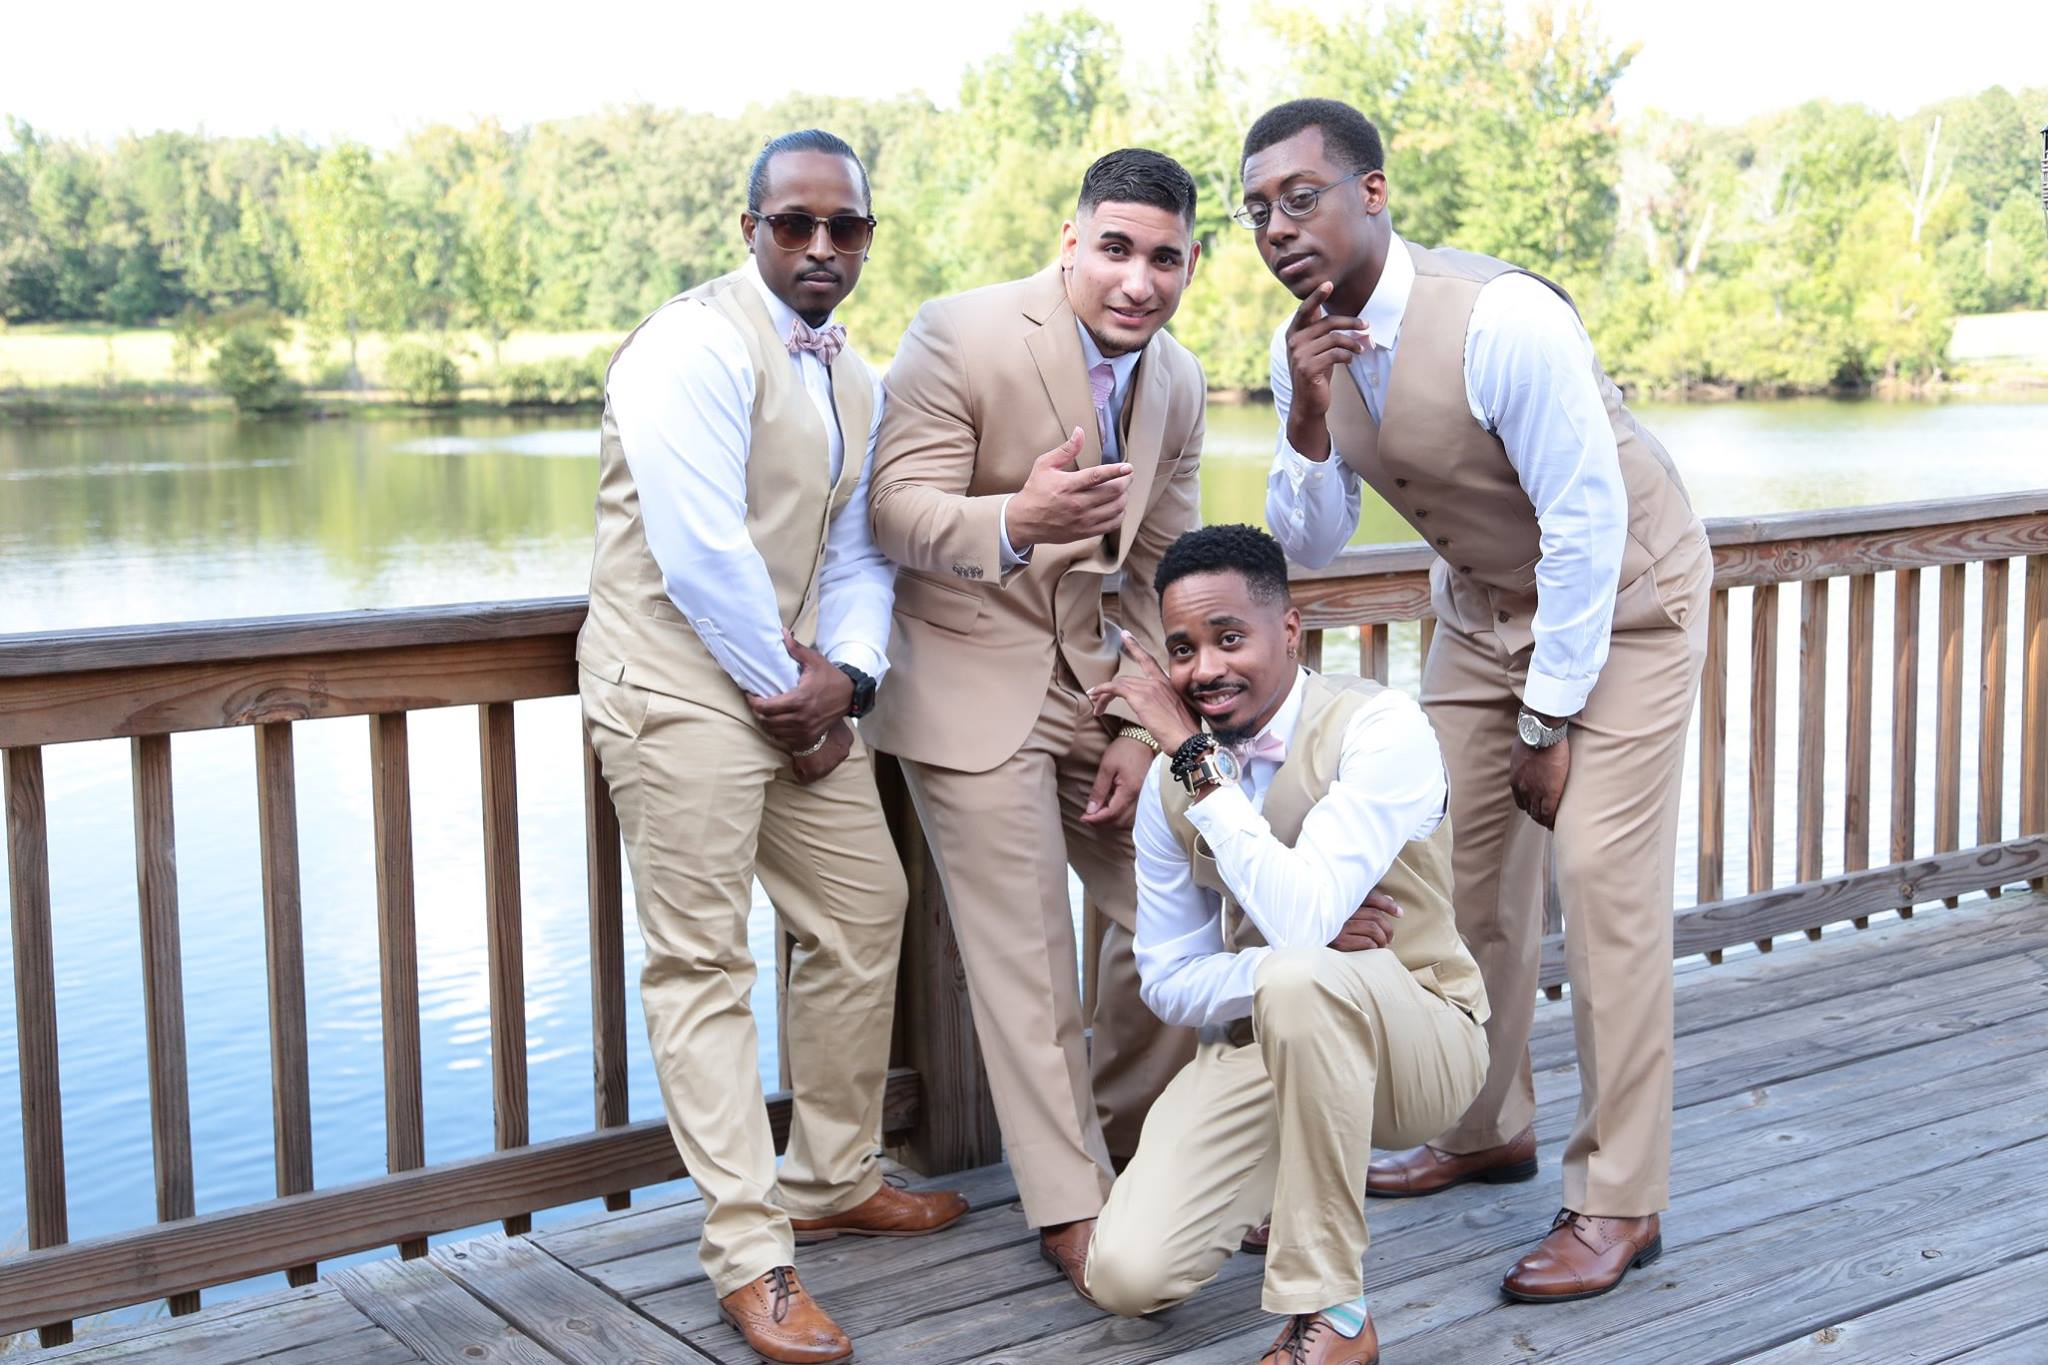 GROOM GROOMSMEN ON DOCK